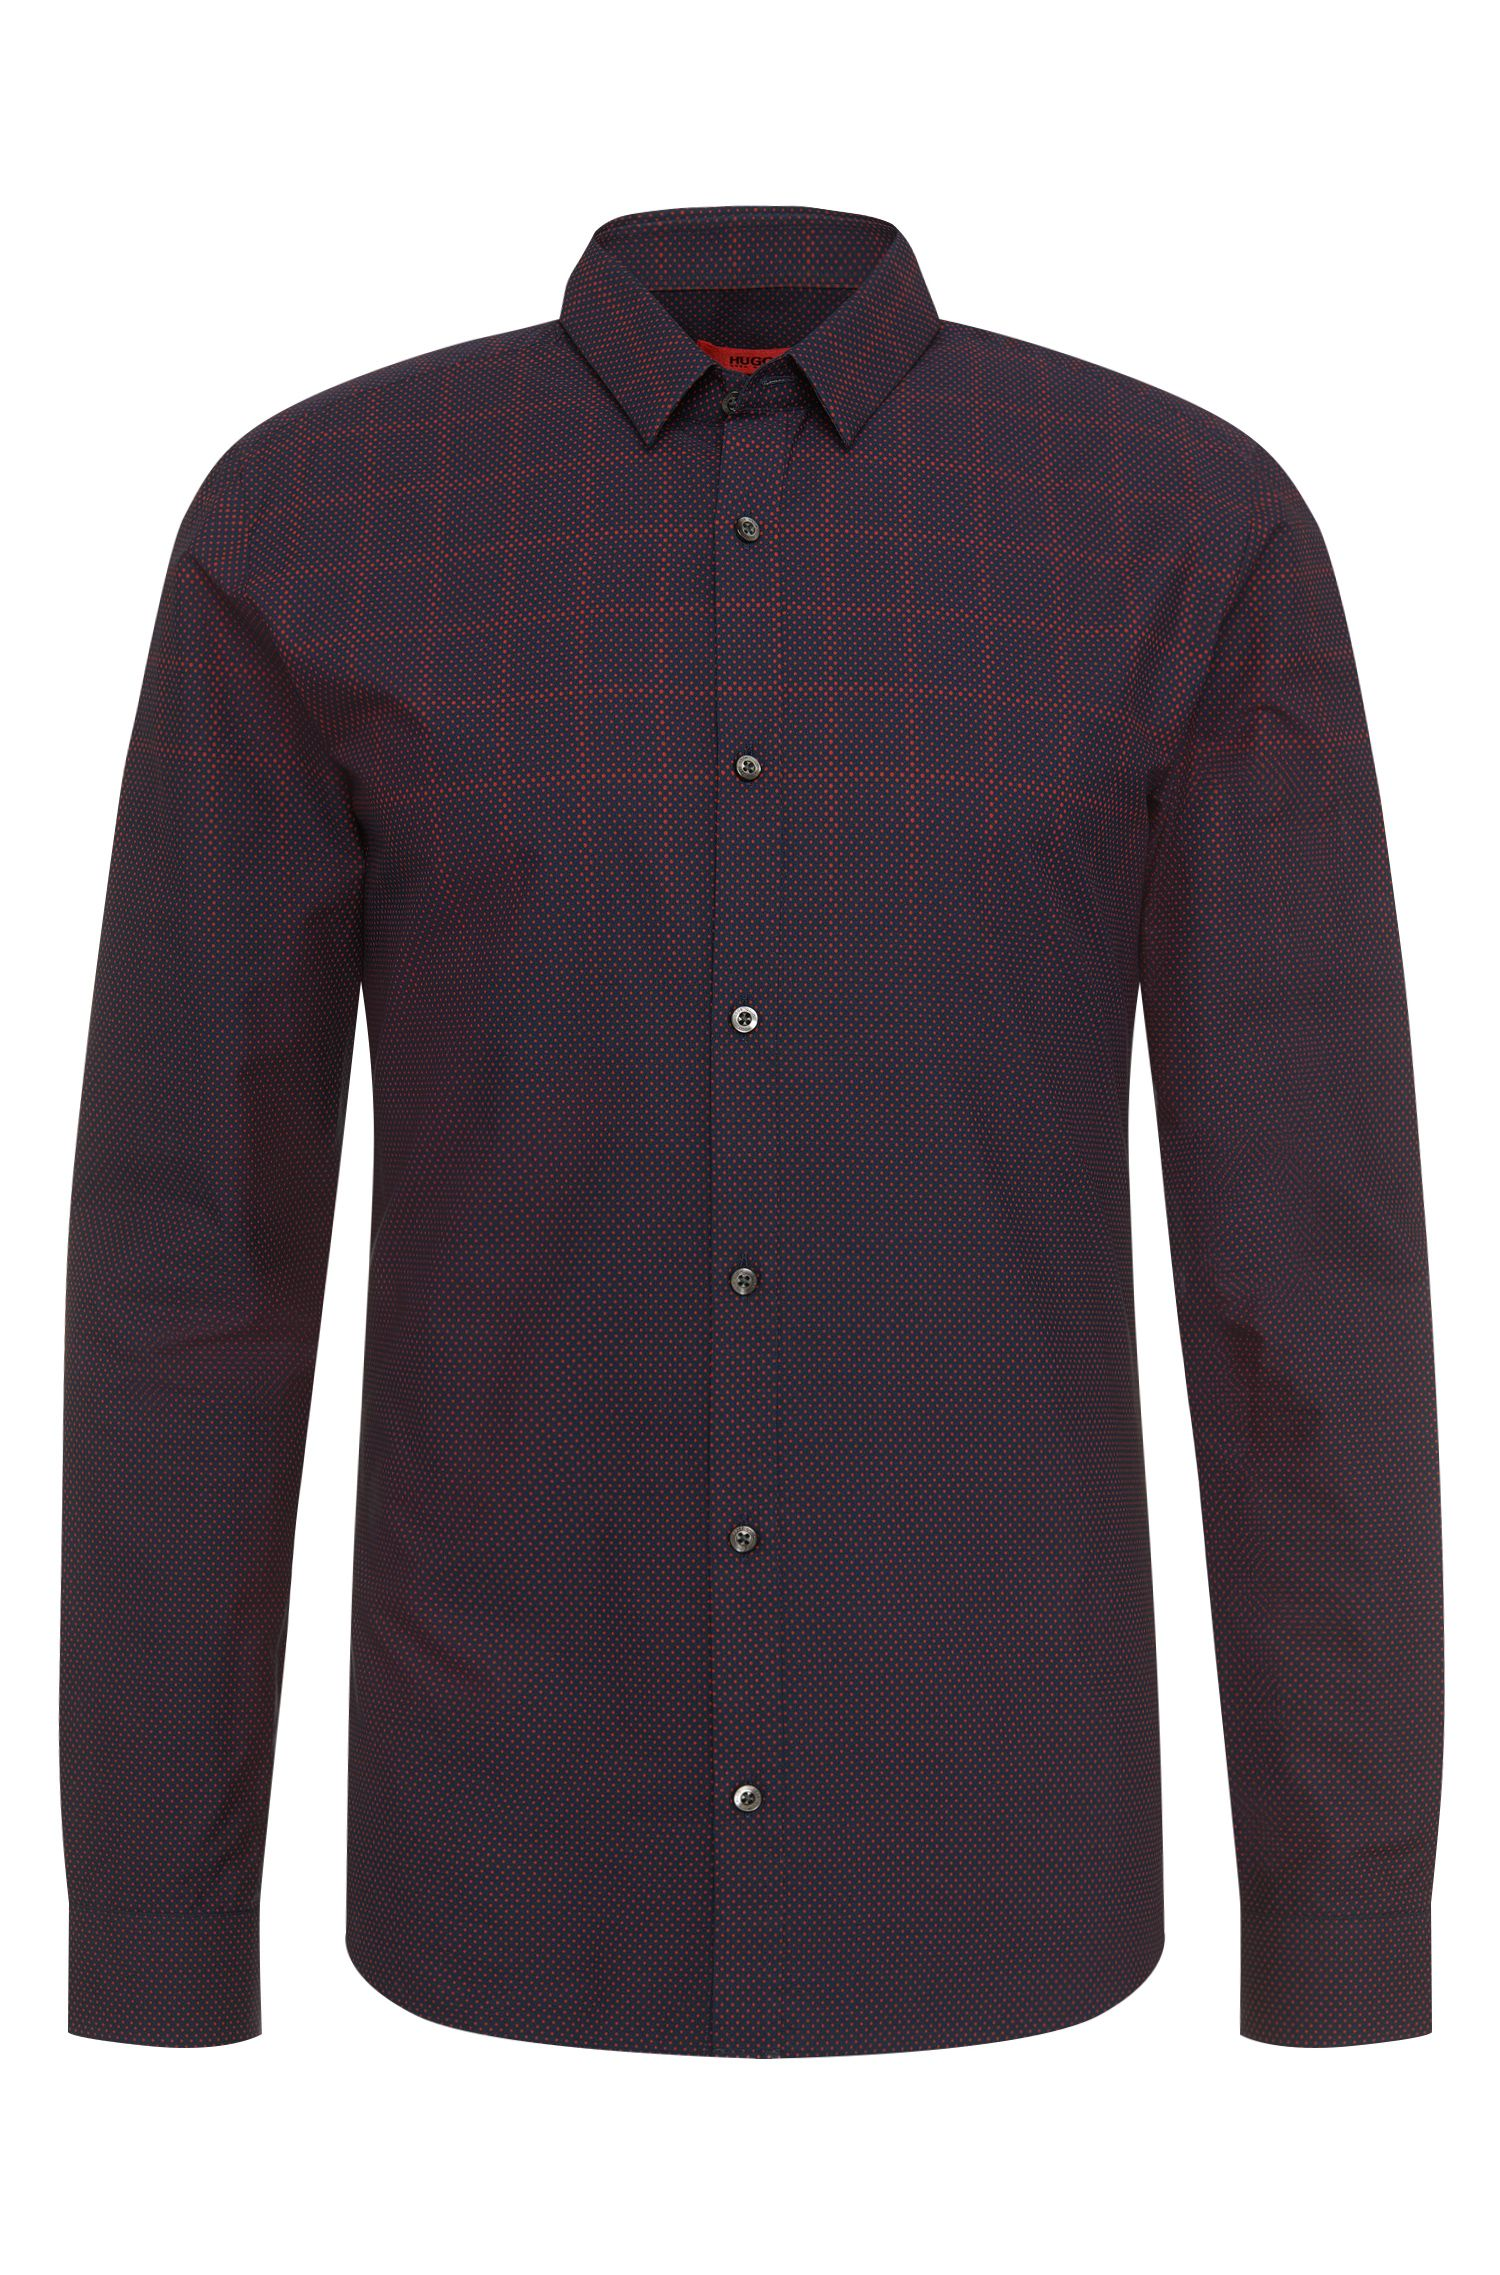 Polka-dot-pattern slim-fit shirt in pure cotton: 'Ero3'